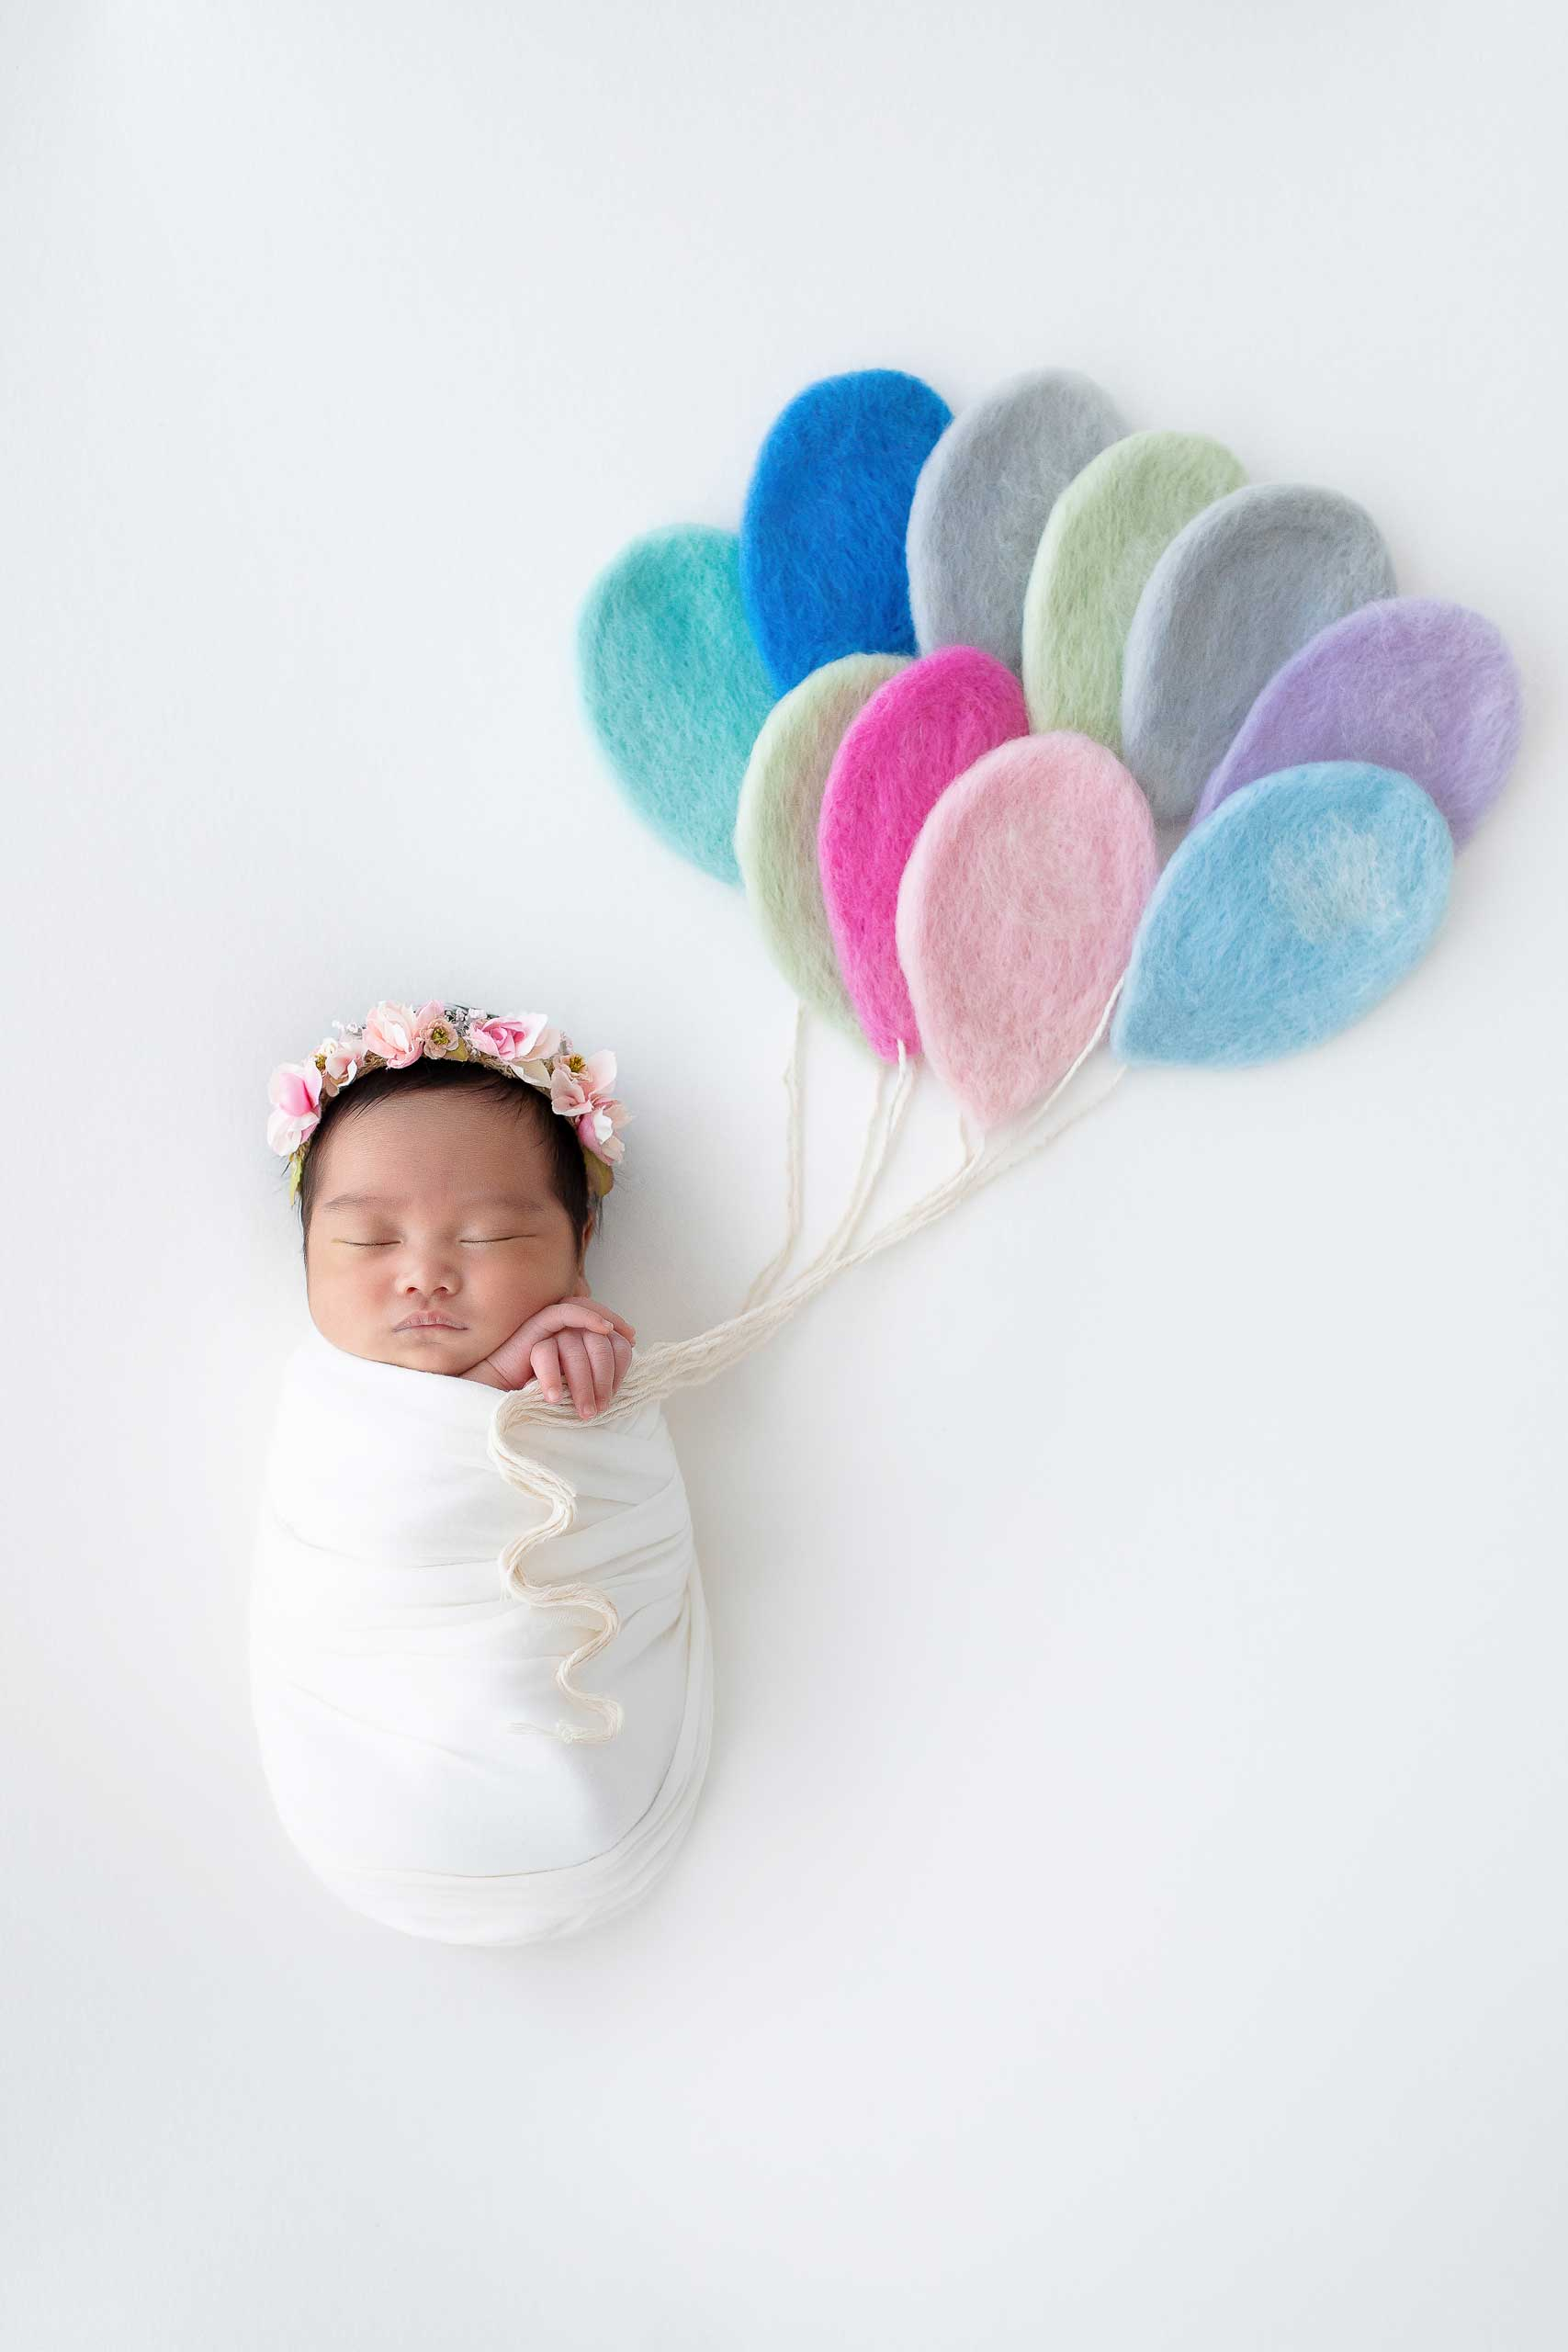 baby newborn with balloons photograph taken in Los Angeles by Ramina Magid Photography